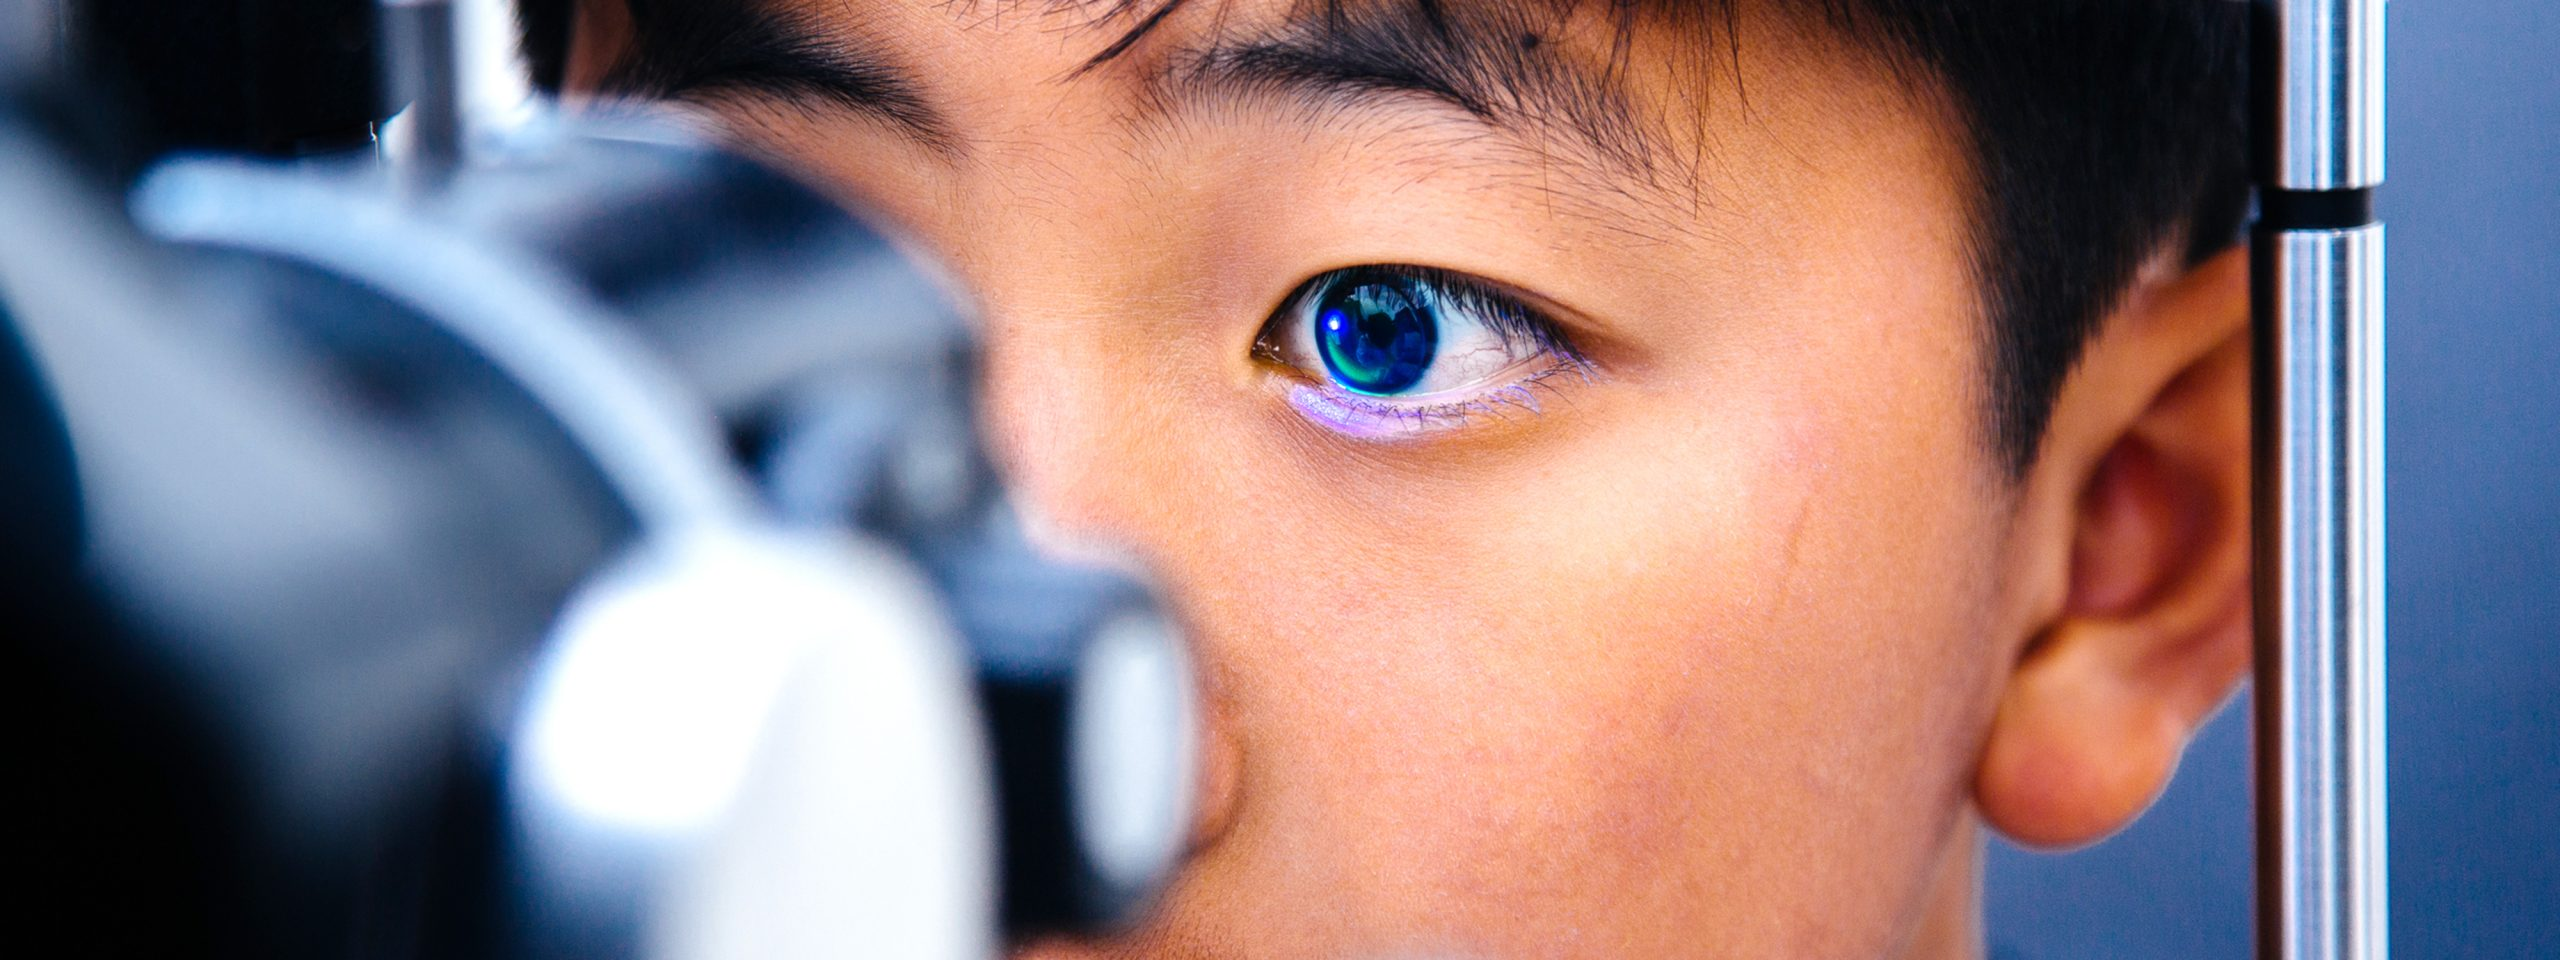 young male patient getting an eye exam